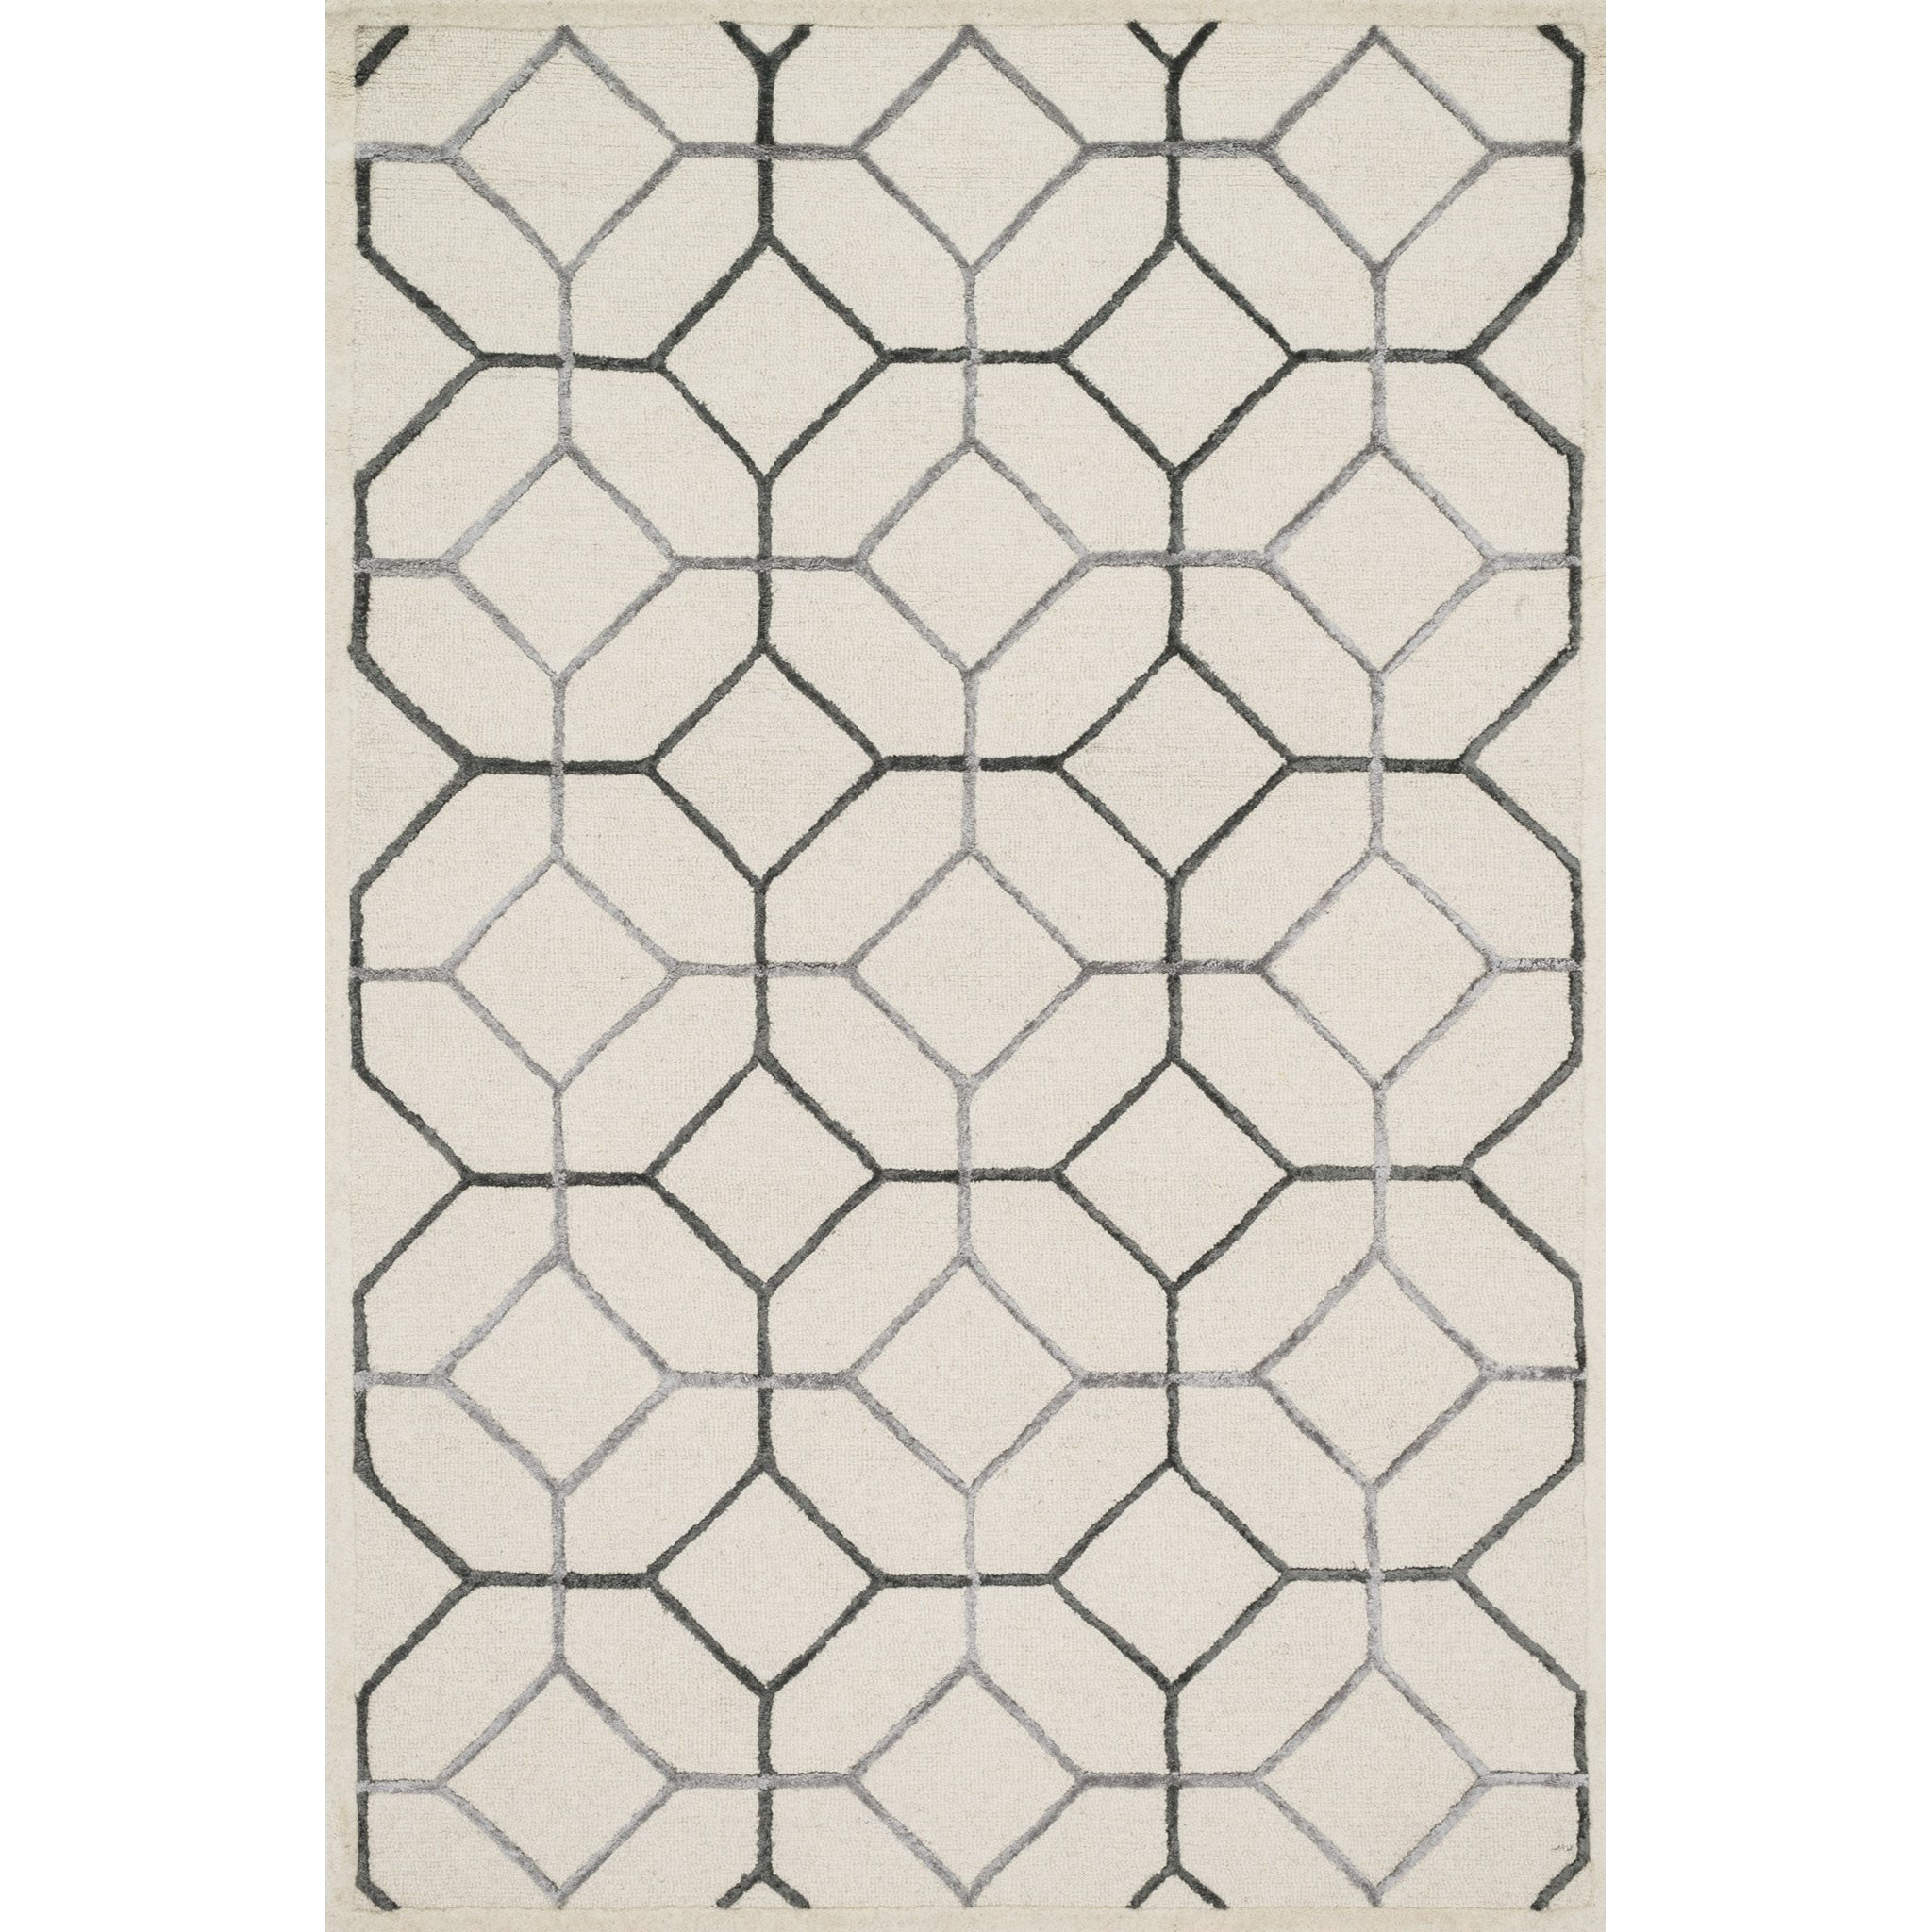 """Panache 7'-6"""" x 9'-6"""" Area Rug by Loloi Rugs at Virginia Furniture Market"""